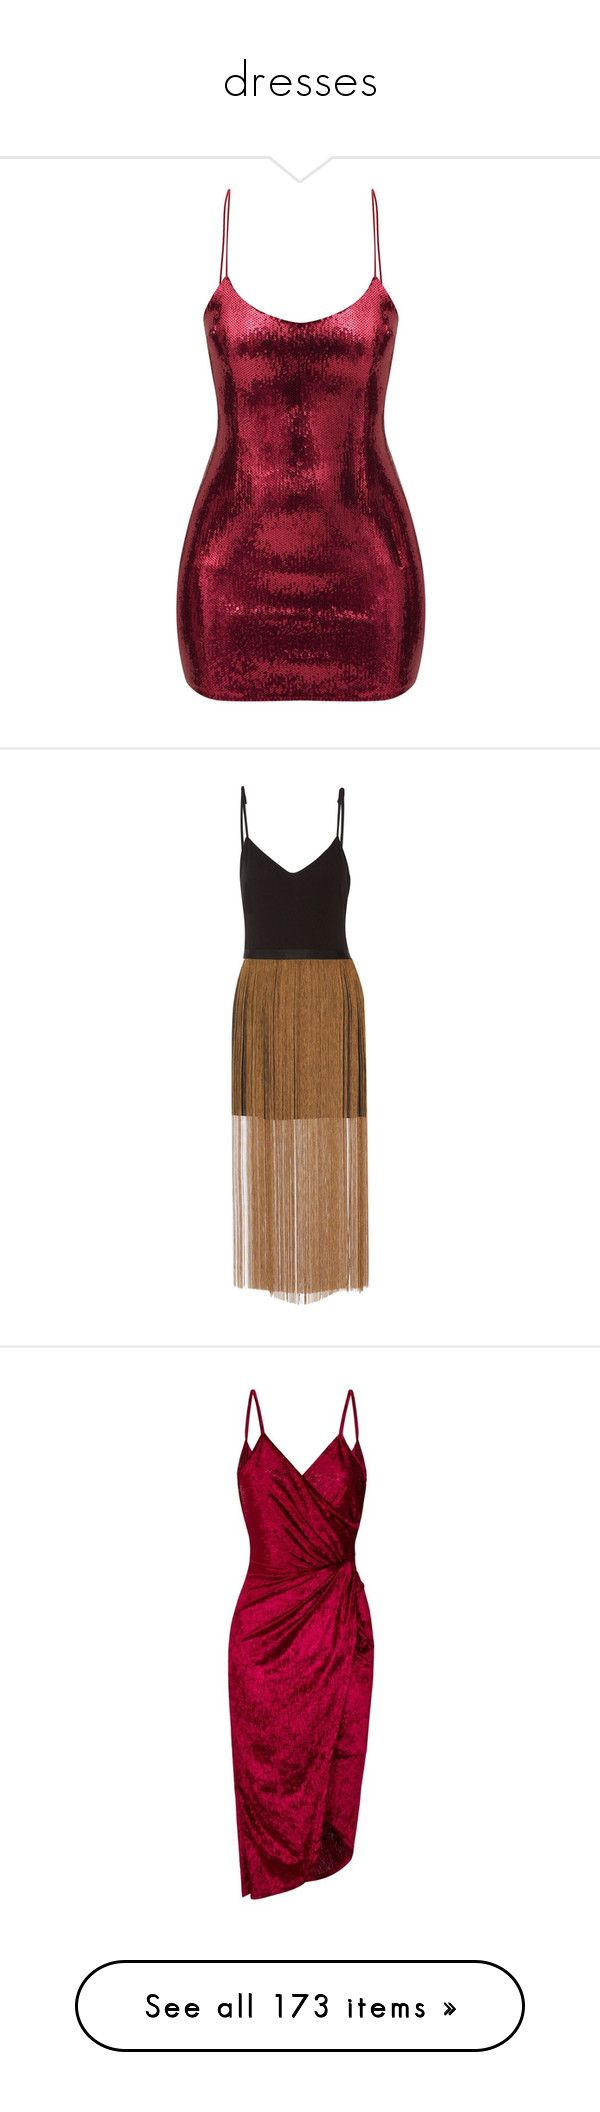 """dresses"" by xsaturnox ❤ liked on Polyvore featuring dresses, vestidos, burgundy red dress, red bodycon dress, bodycon cocktail dresses, red body con dress, burgundy sequin dress, fringe dress, brown mini dress and brown dresses"